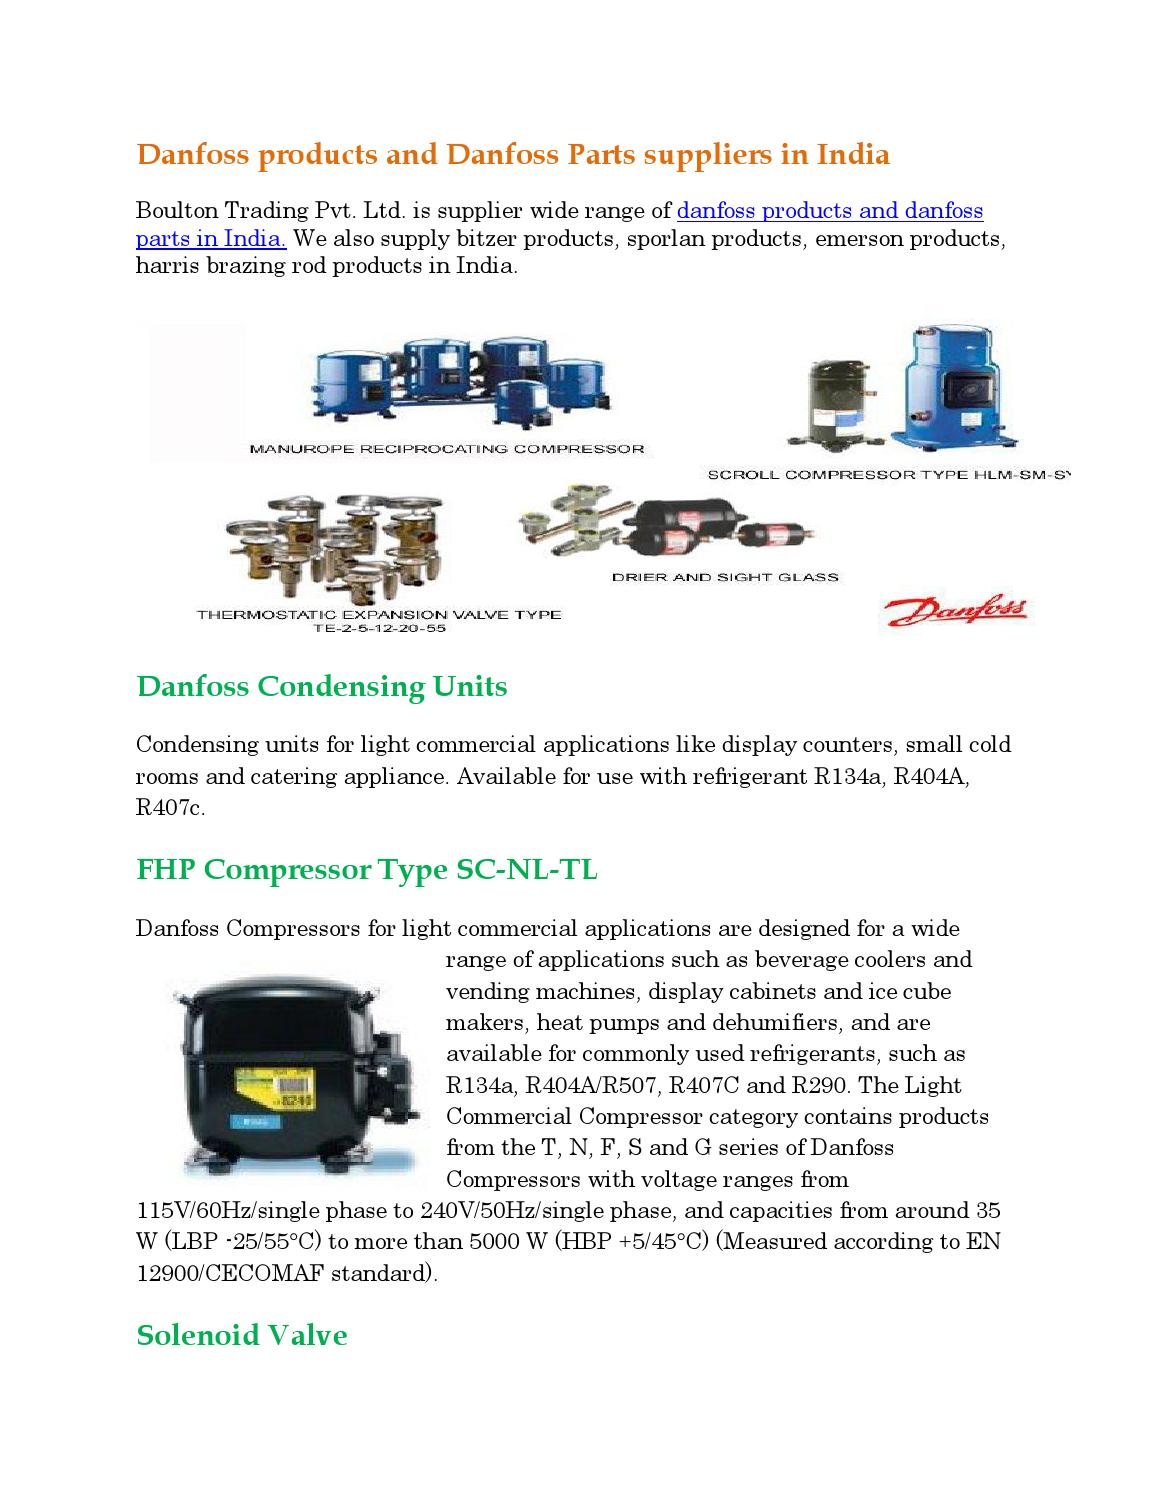 Danfoss products suppliers in india pdf 3 by Boulton Trading Pvt